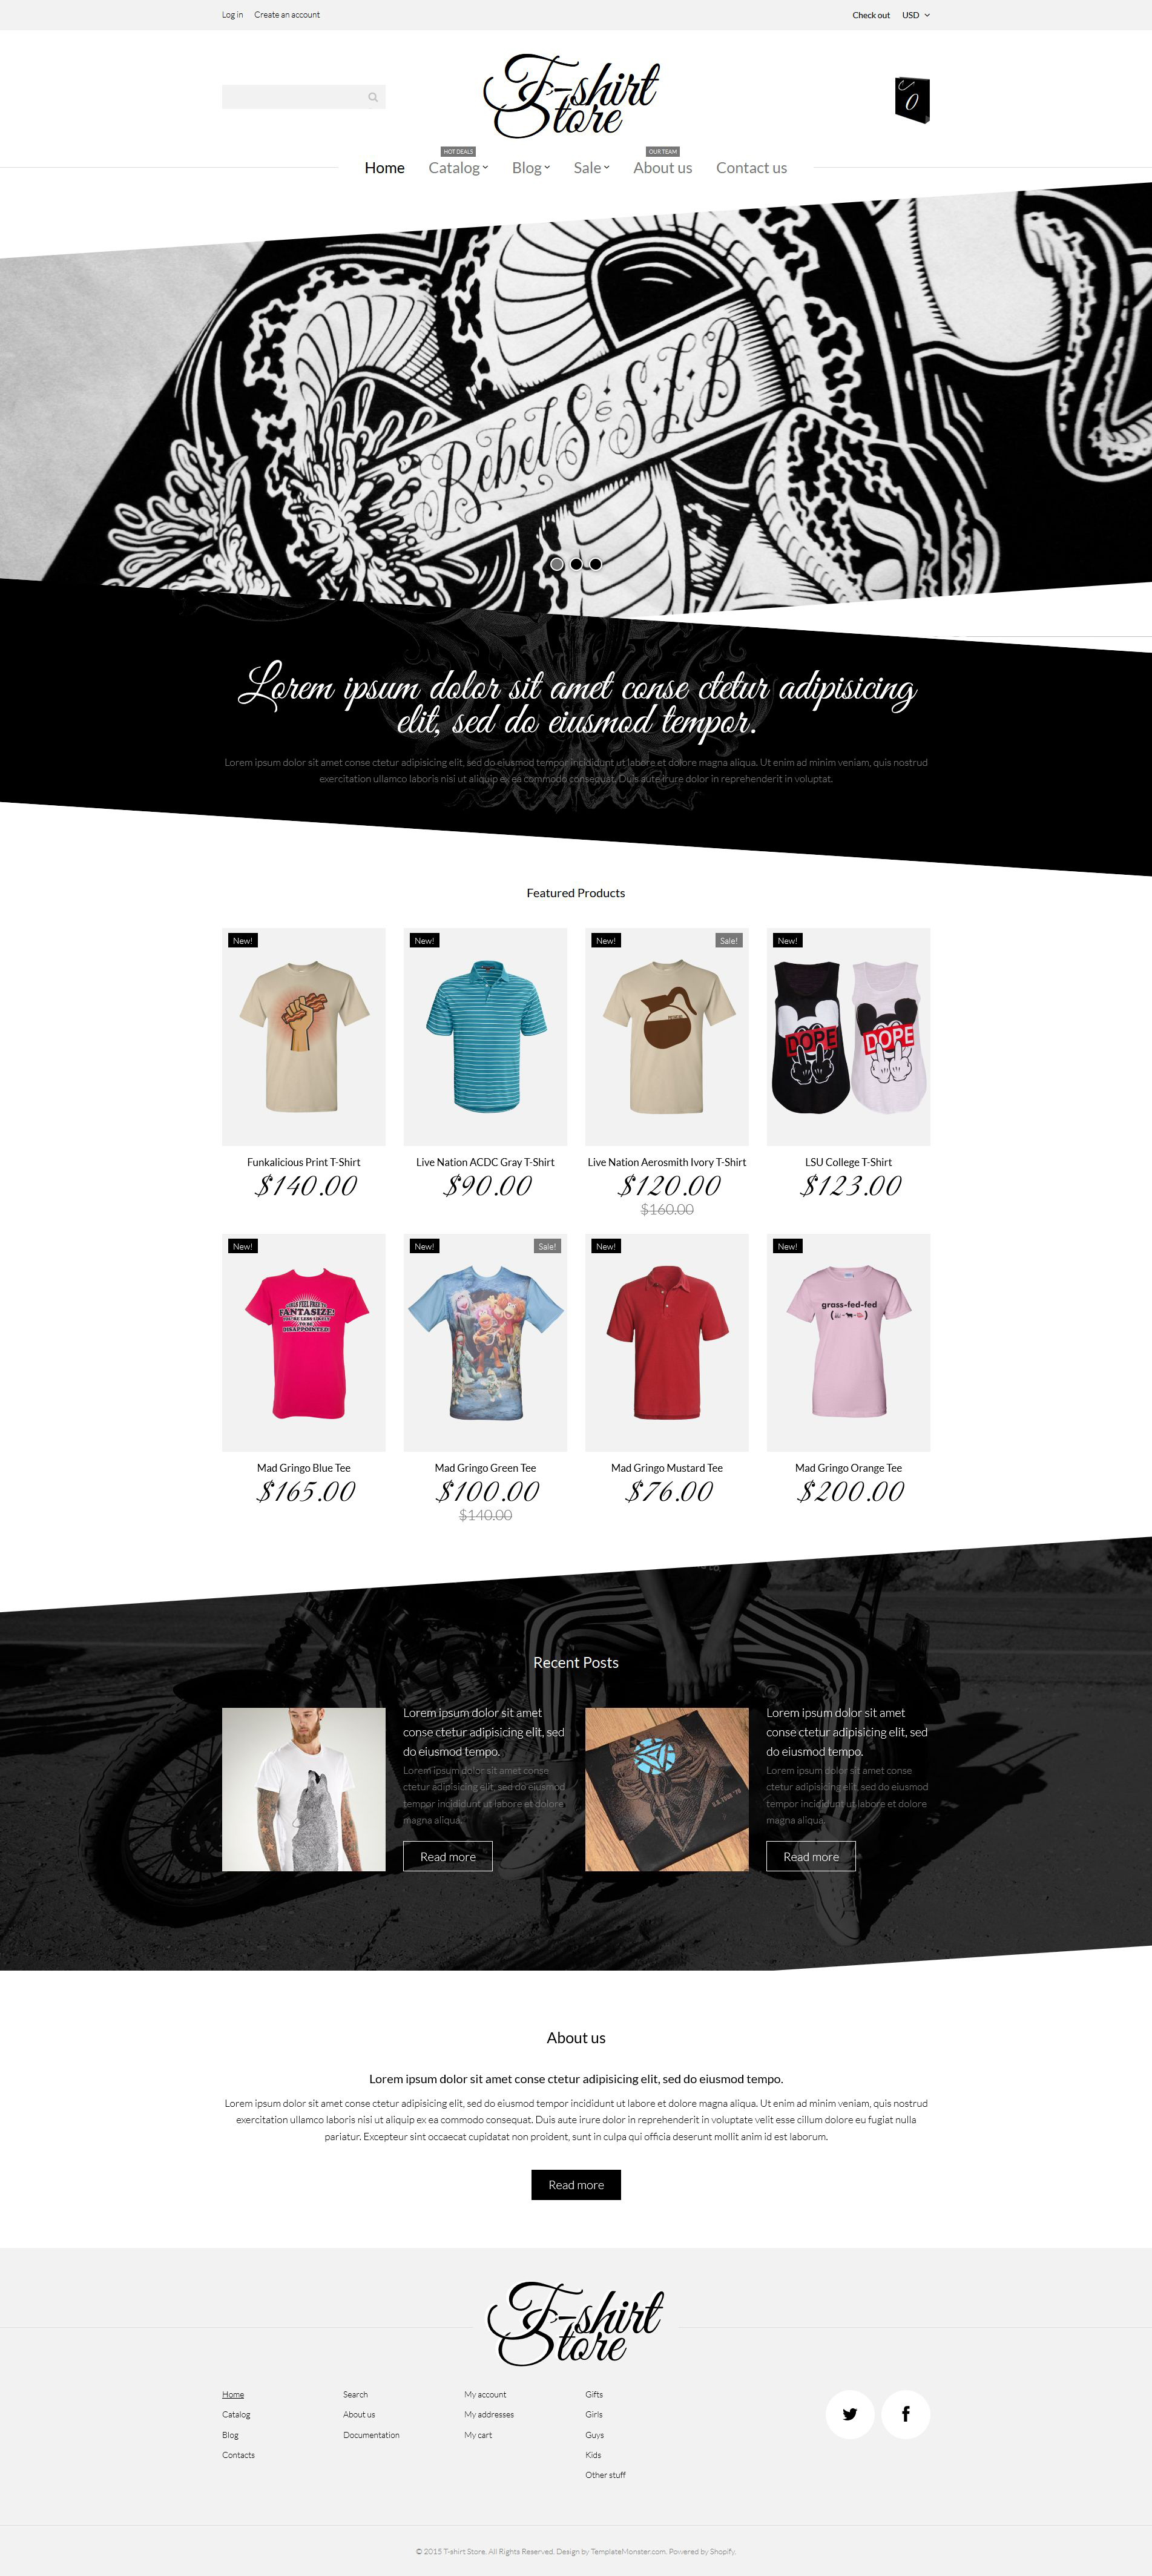 The T-shirts Clothes Online Shop Shopify Design 53570, one of the best Shopify themes of its kind (fashion, most popular), also known as t-shirts clothes online shop Shopify template, fashion Shopify template, pant Shopify template, sweatshirt Shopify template, belt Shopify template, accessory Shopify template, denim Shopify template, outwear Shopify template, pajama Shopify template, robe Shopify template, sweater Shopify template, suit Shopify template, short Shopify template, underwear Shopify template, socks Shopify template, wallet Shopify template, t-shirt Shopify template, jeans Shopify template, jacket Shopify template, pullover Shopify template, swimsuit Shopify template, thong Shopify template, coverall Shopify template, bag Shopify template, shoes Shopify template, dress Shopify template, tie Shopify template, brassier Shopify template, prices Shopify template, eye Shopify template, wear Shopify template, perfumes and related with t-shirts clothes online shop, fashion, pant, sweatshirt, belt, accessory, denim, outwear, pajama, robe, sweater, suit, short, underwear, socks, wallet, t-shirt, jeans, jacket, pullover, swimsuit, thong, coverall, bag, shoes, dress, tie, brassier, prices, eye, wear, perfumes, etc.